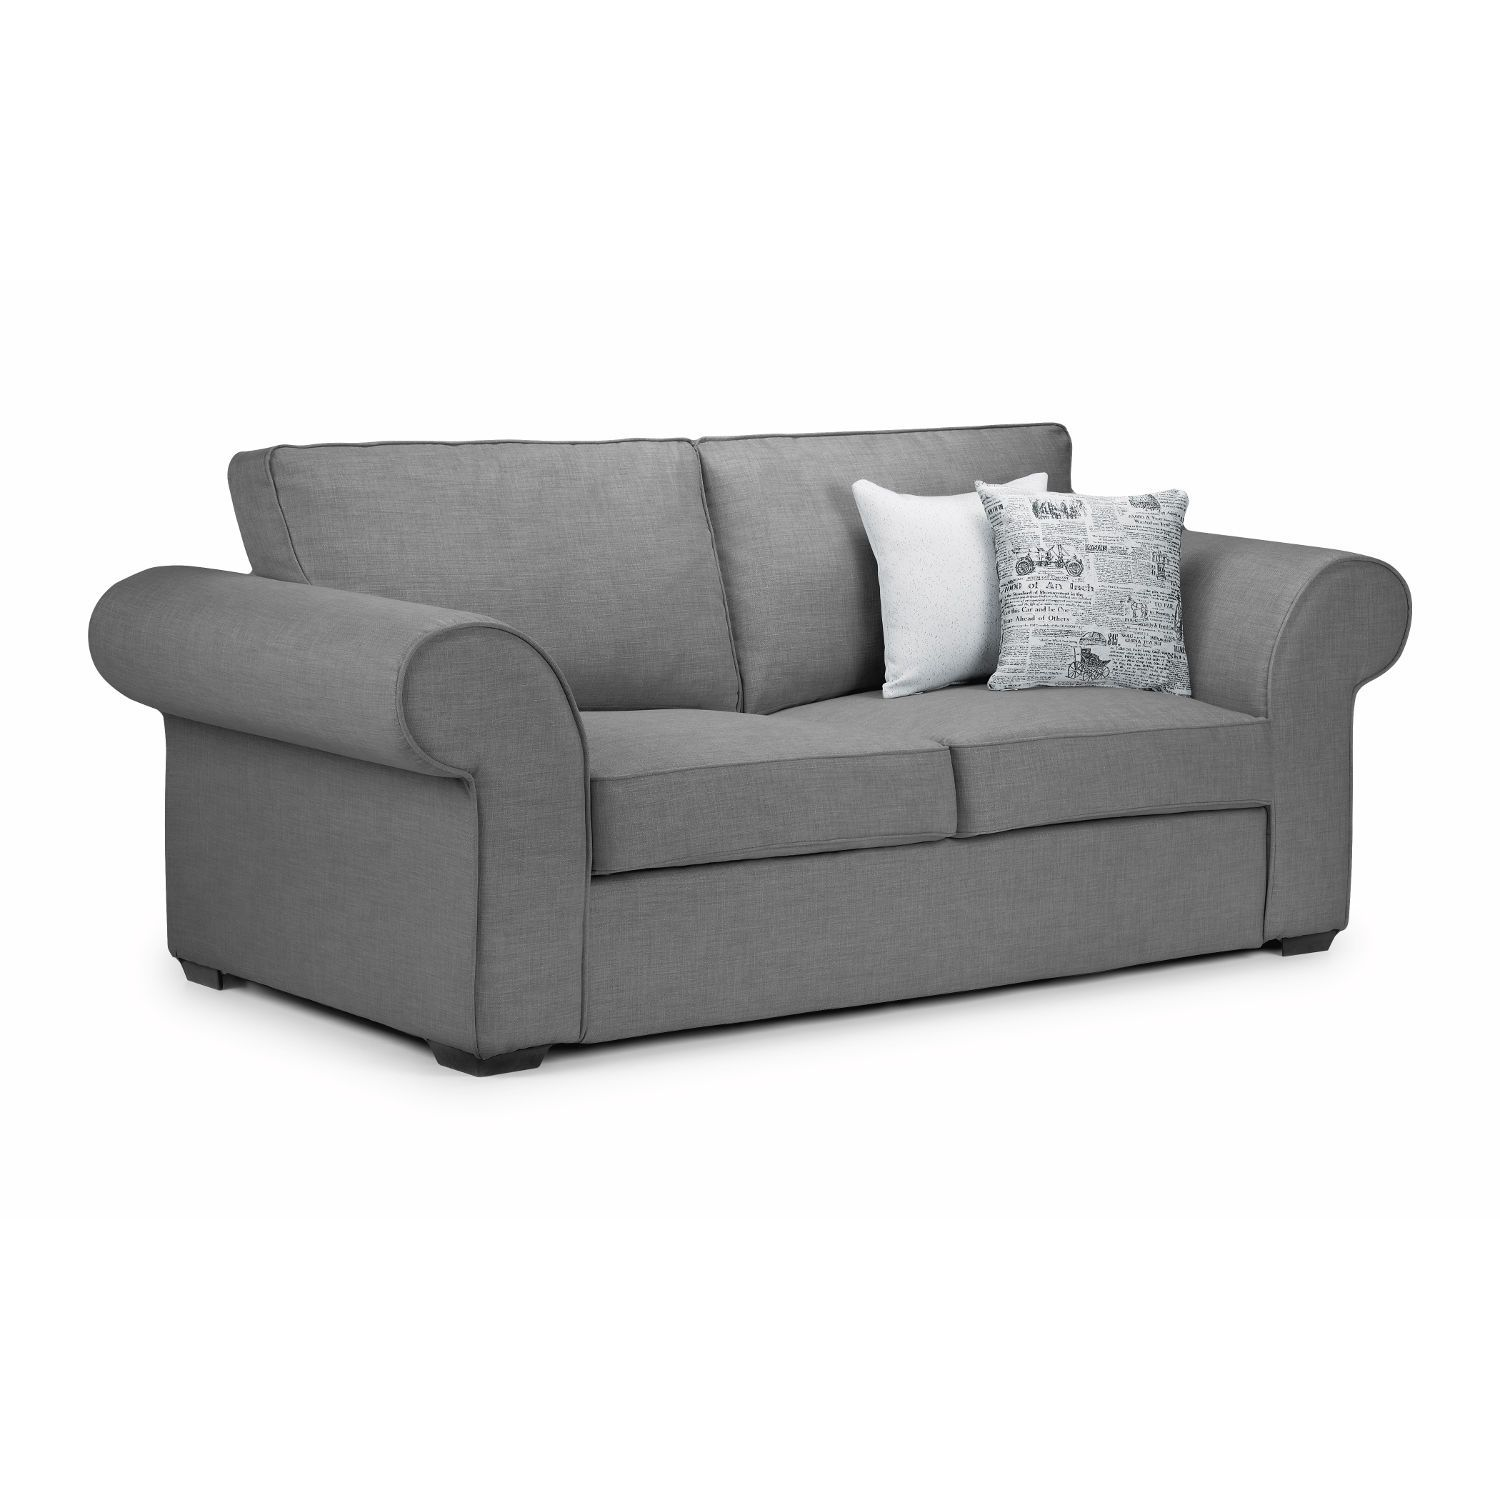 Linden 2 Seater Fabric Sofa Next Day Delivery